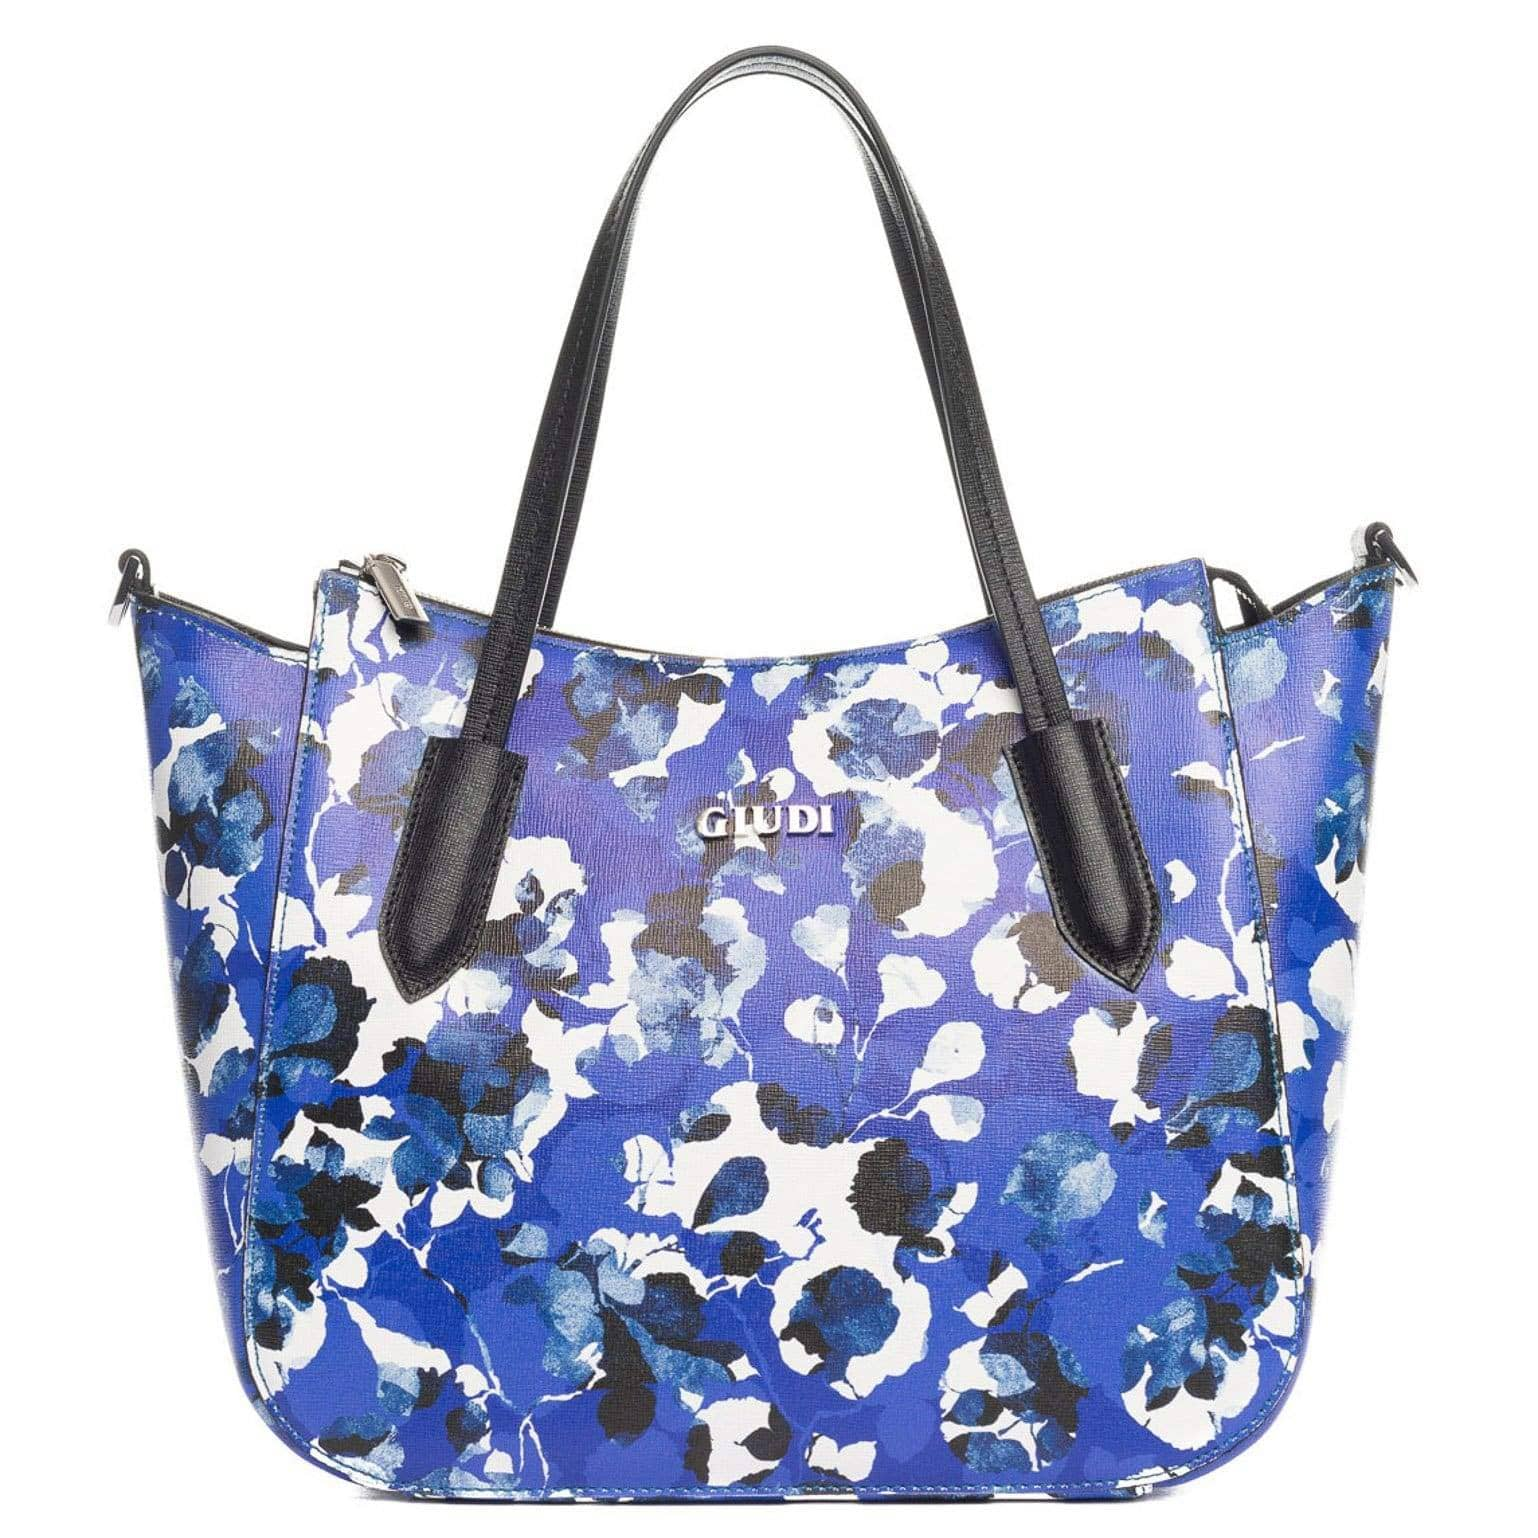 blue floral saffiano leather handbag